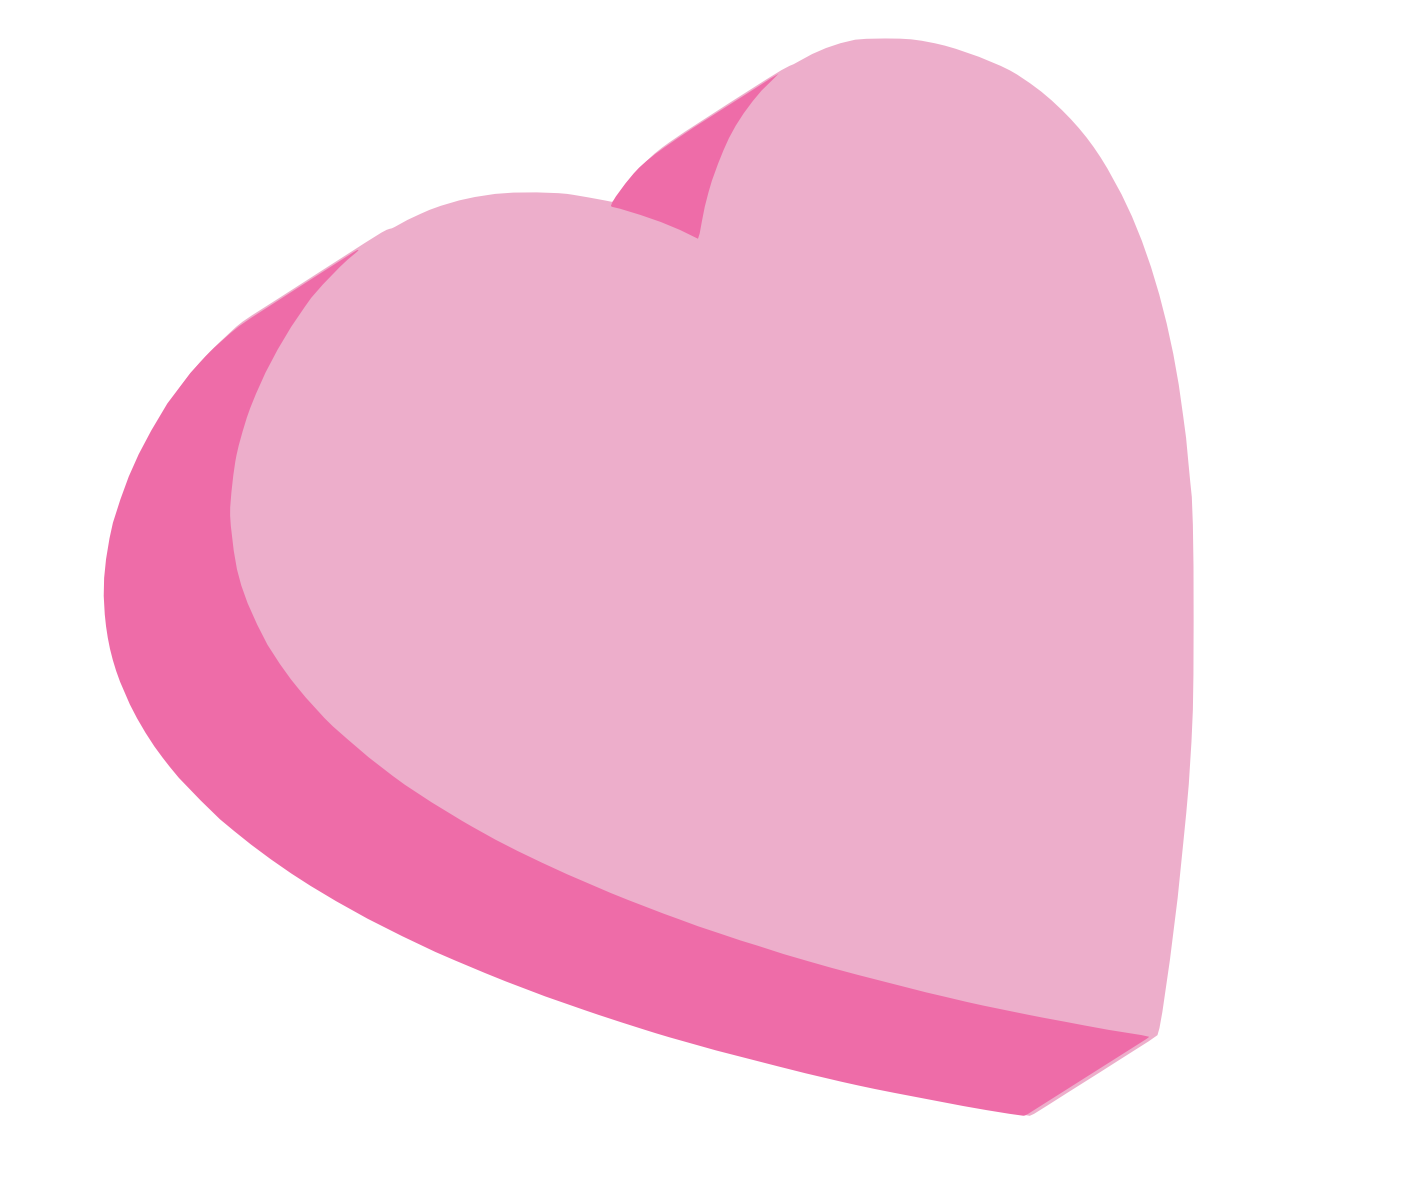 Candy Heart Svg Tu J S And A Taco